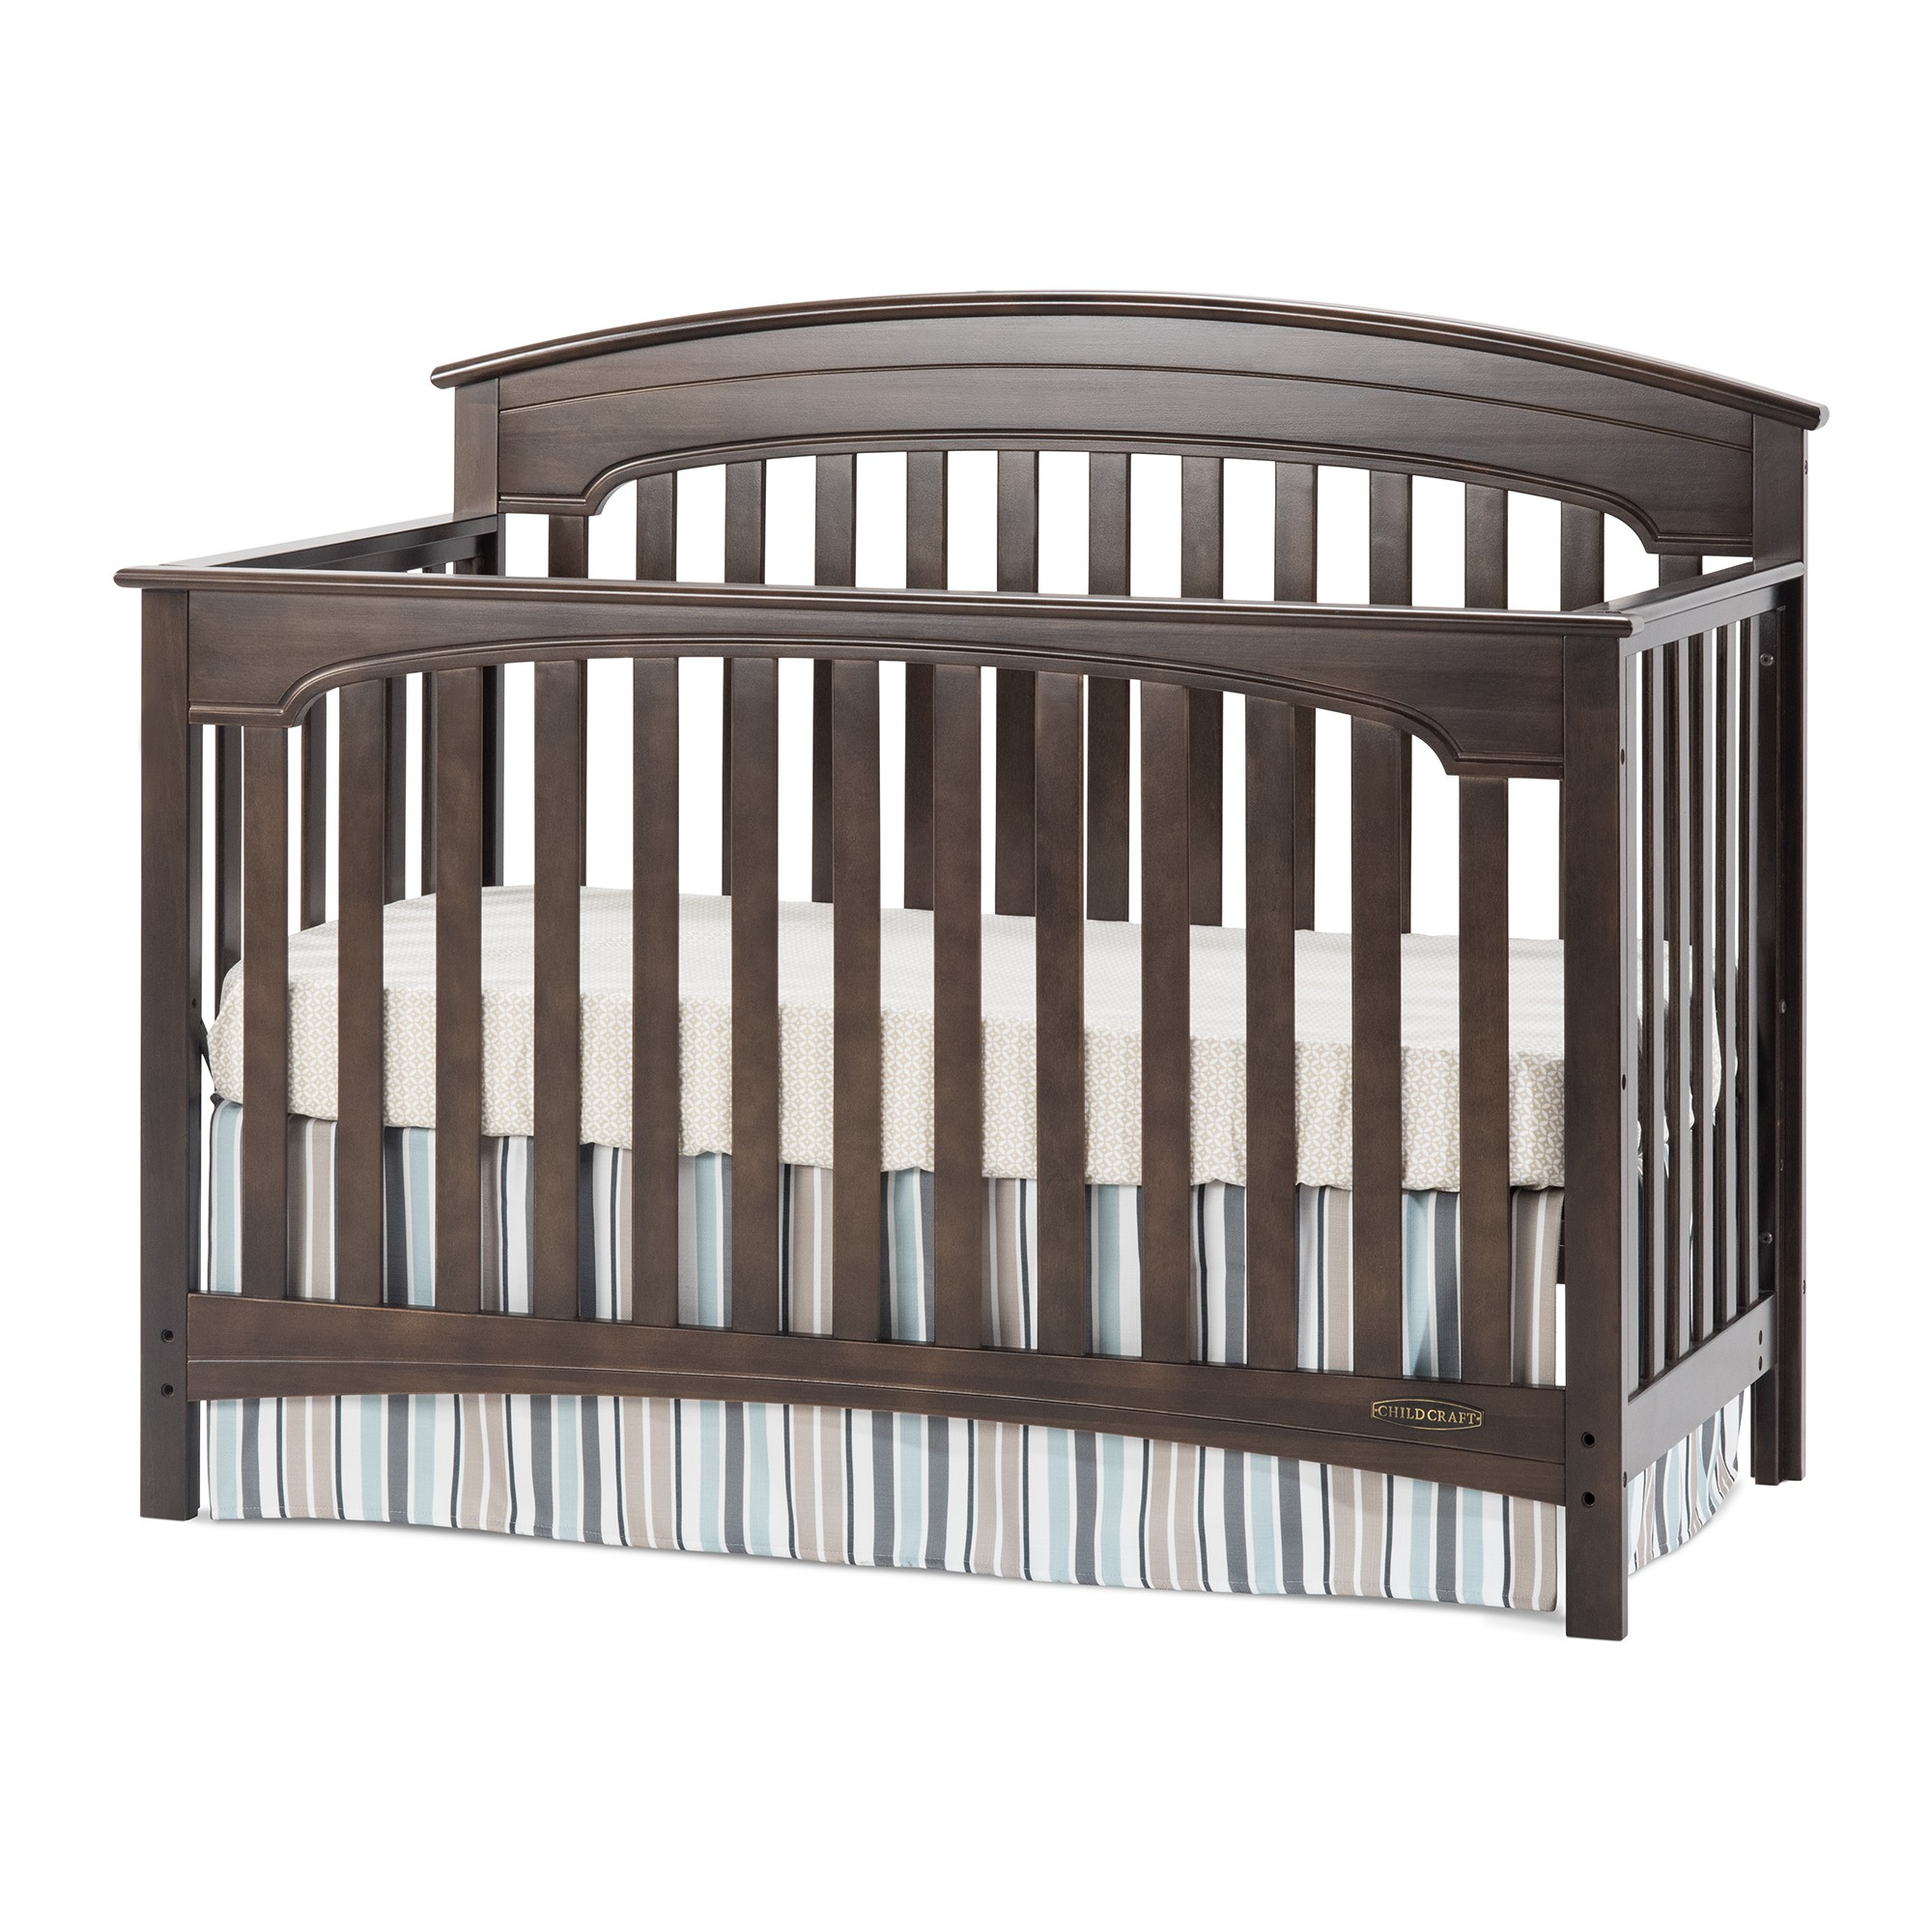 grey bedroom baby toddler convertible royale kids choice montana cache lifetime collection crib best charming heritage us r cribs for babies bed guardrail